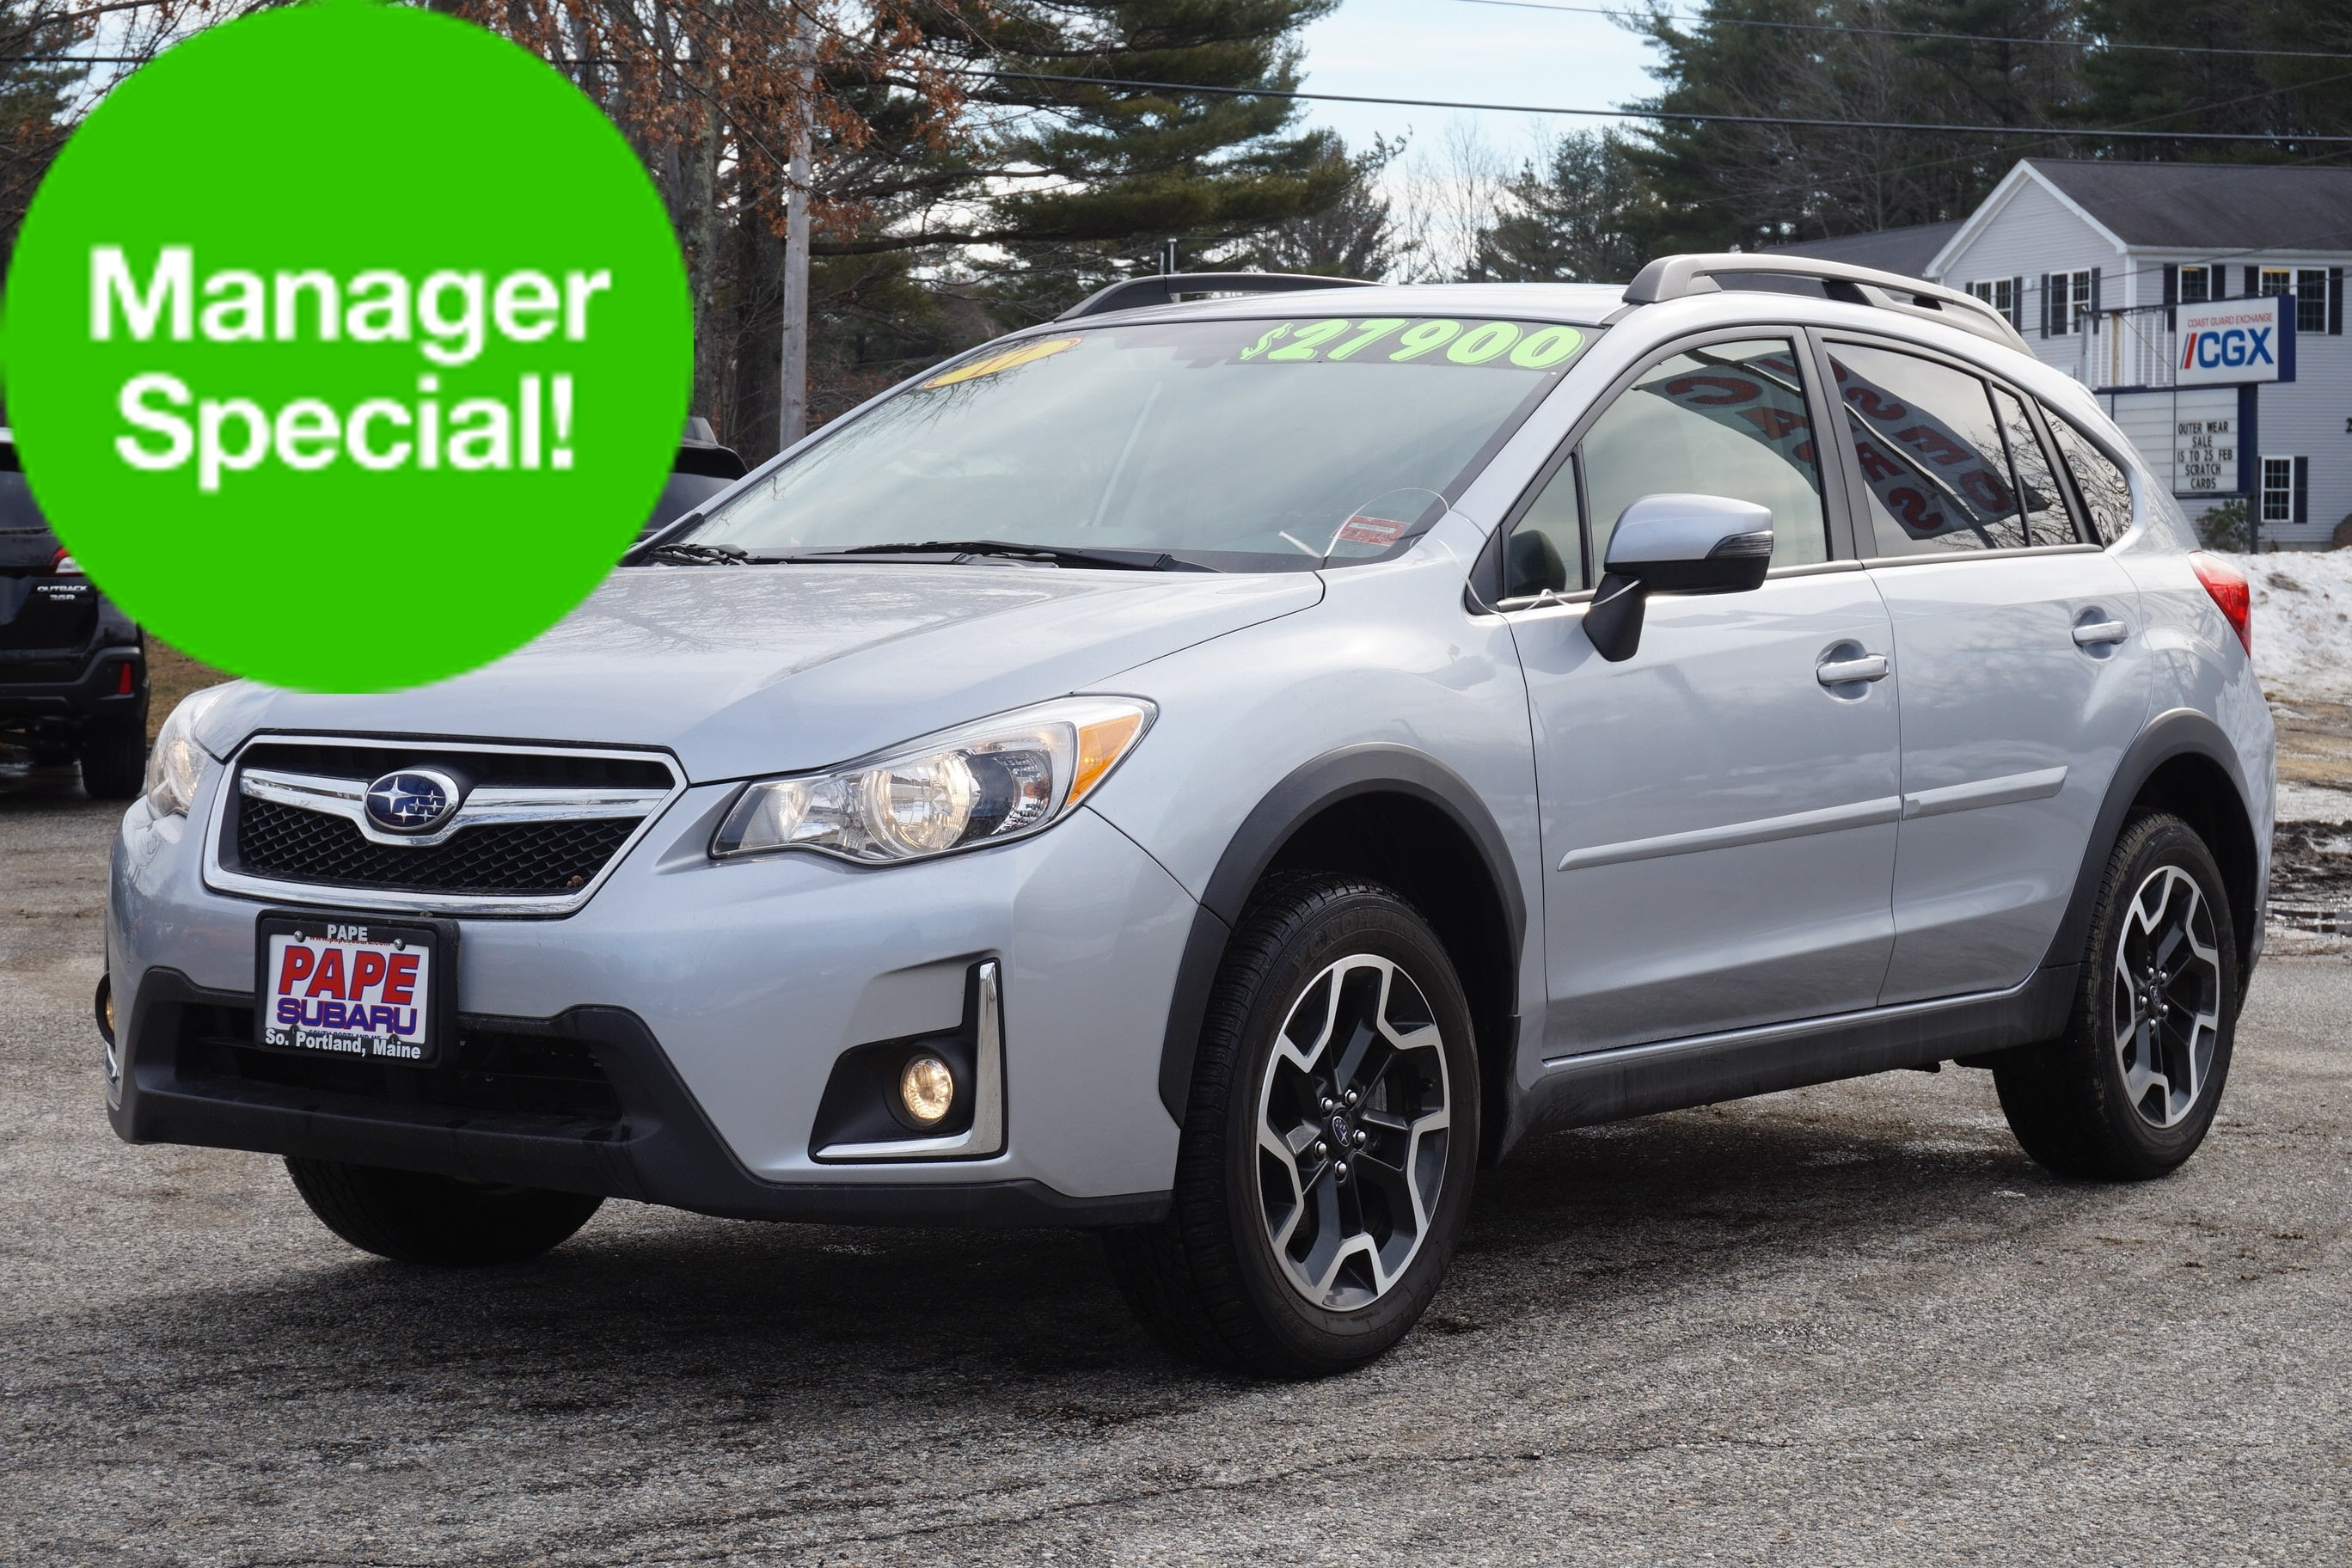 Cars for Sale Close to Me Inspirational Used Cars Near Me Under 2000 Fresh Cars for Sale Near Me